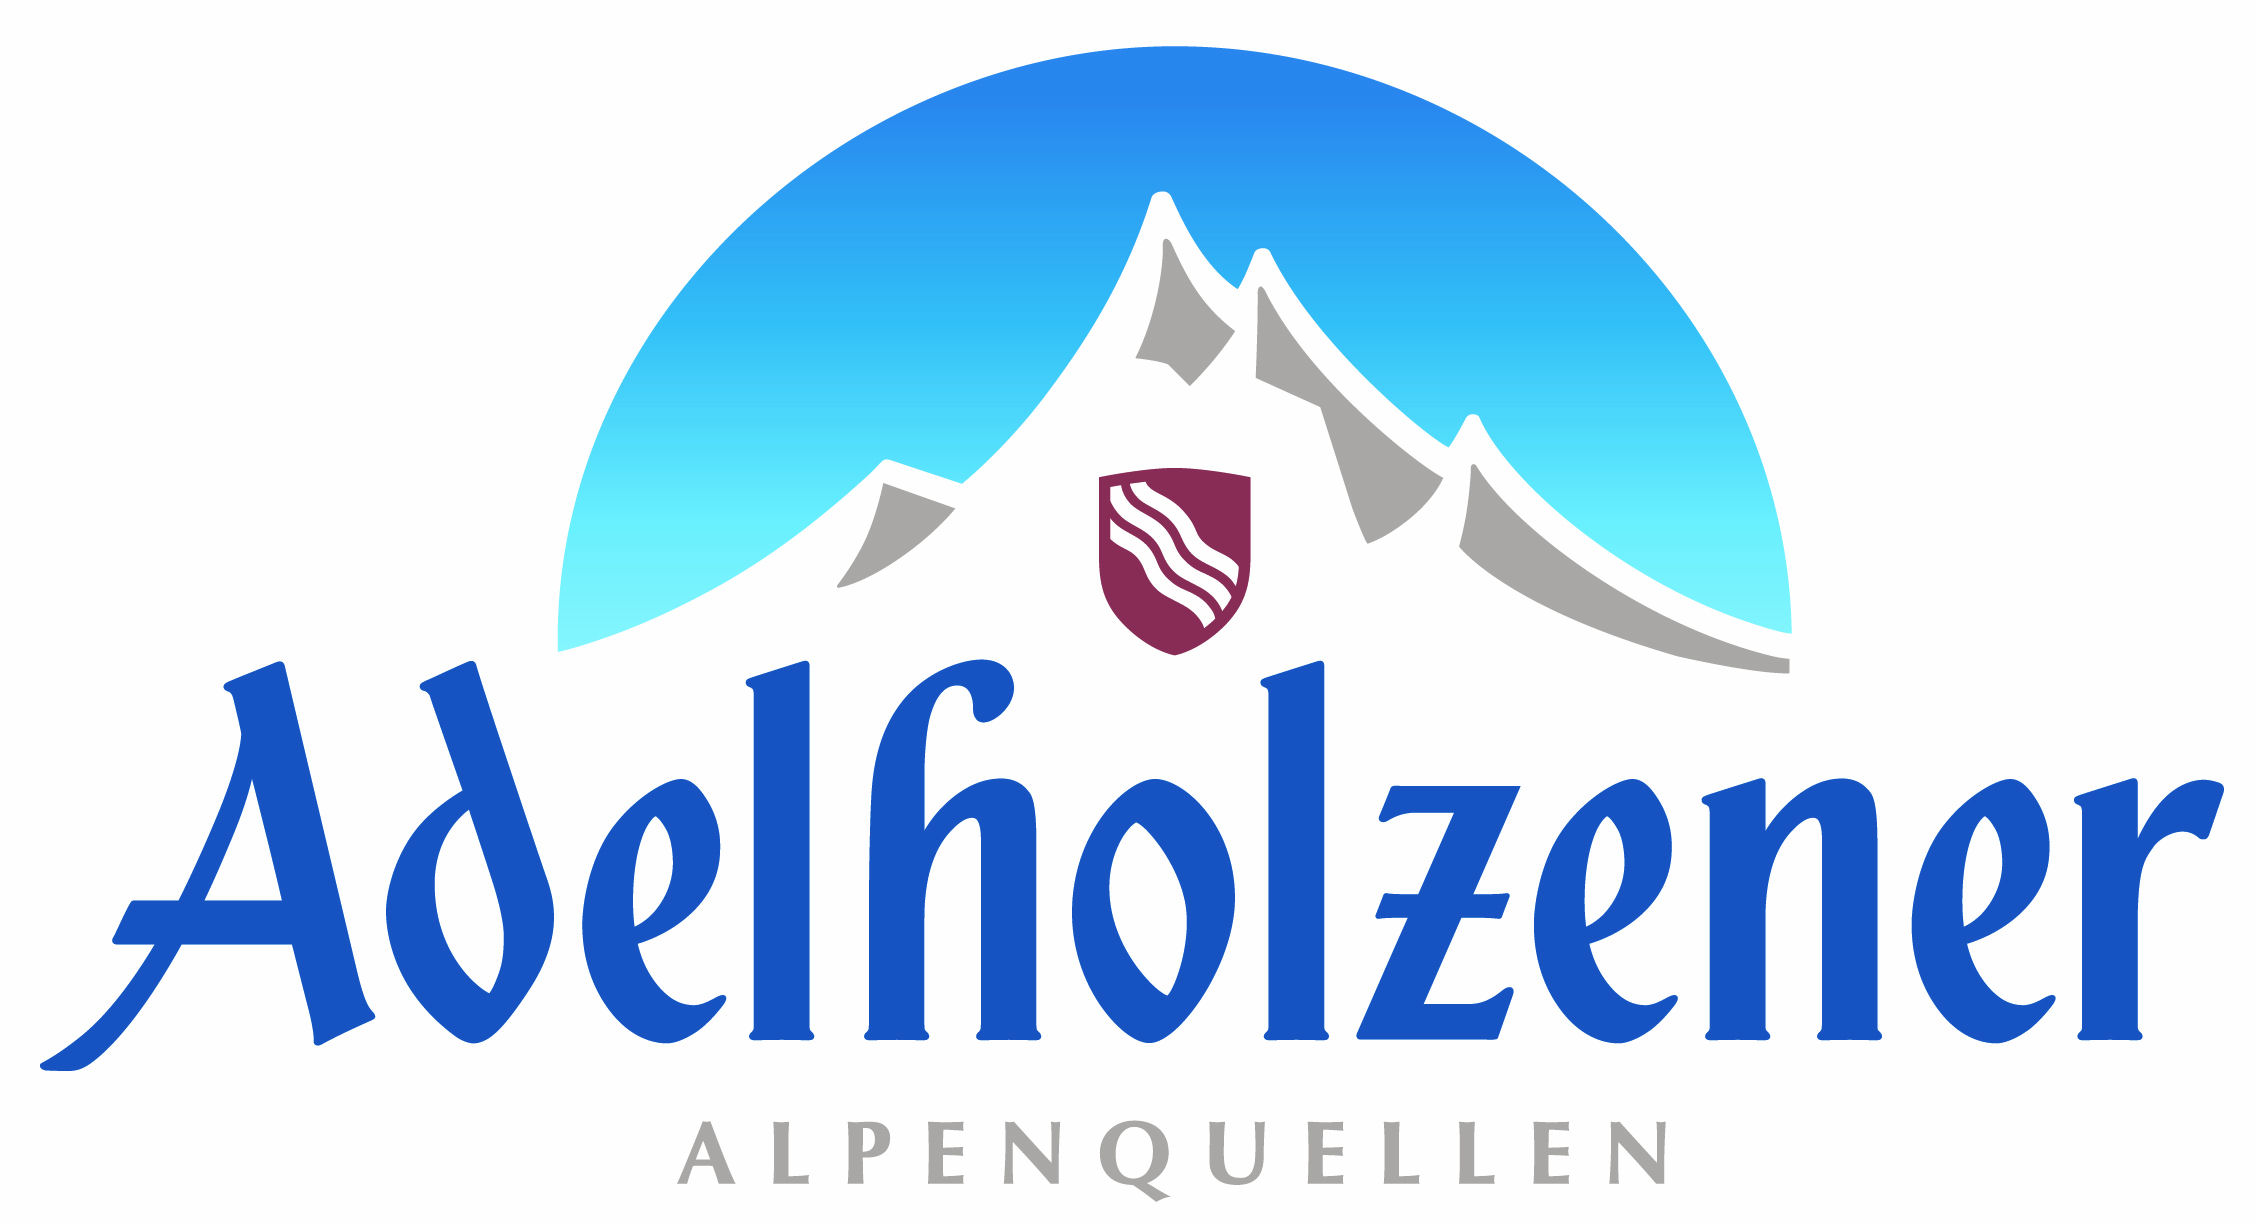 Adelholzener